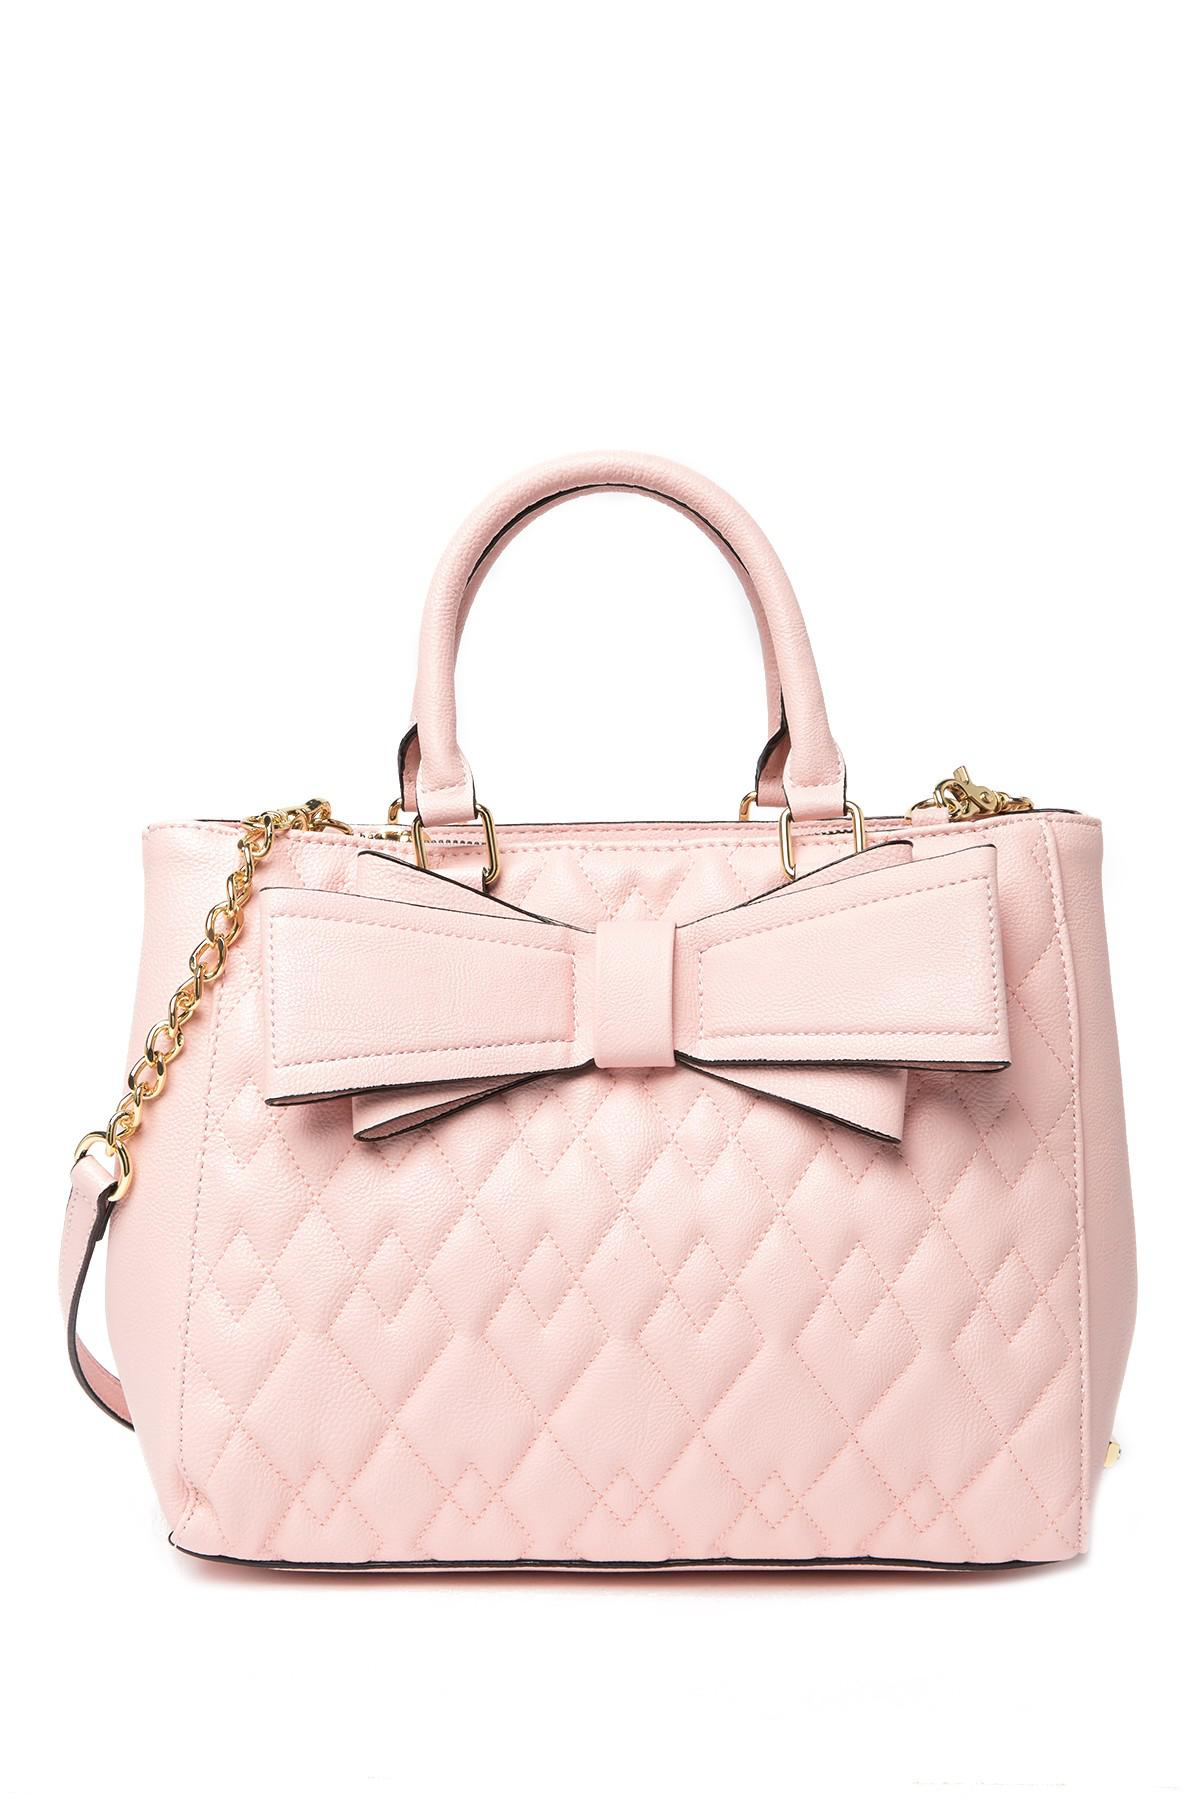 361bc46400 Lyst - Betsey Johnson Diamond Quilted Satchel in Pink